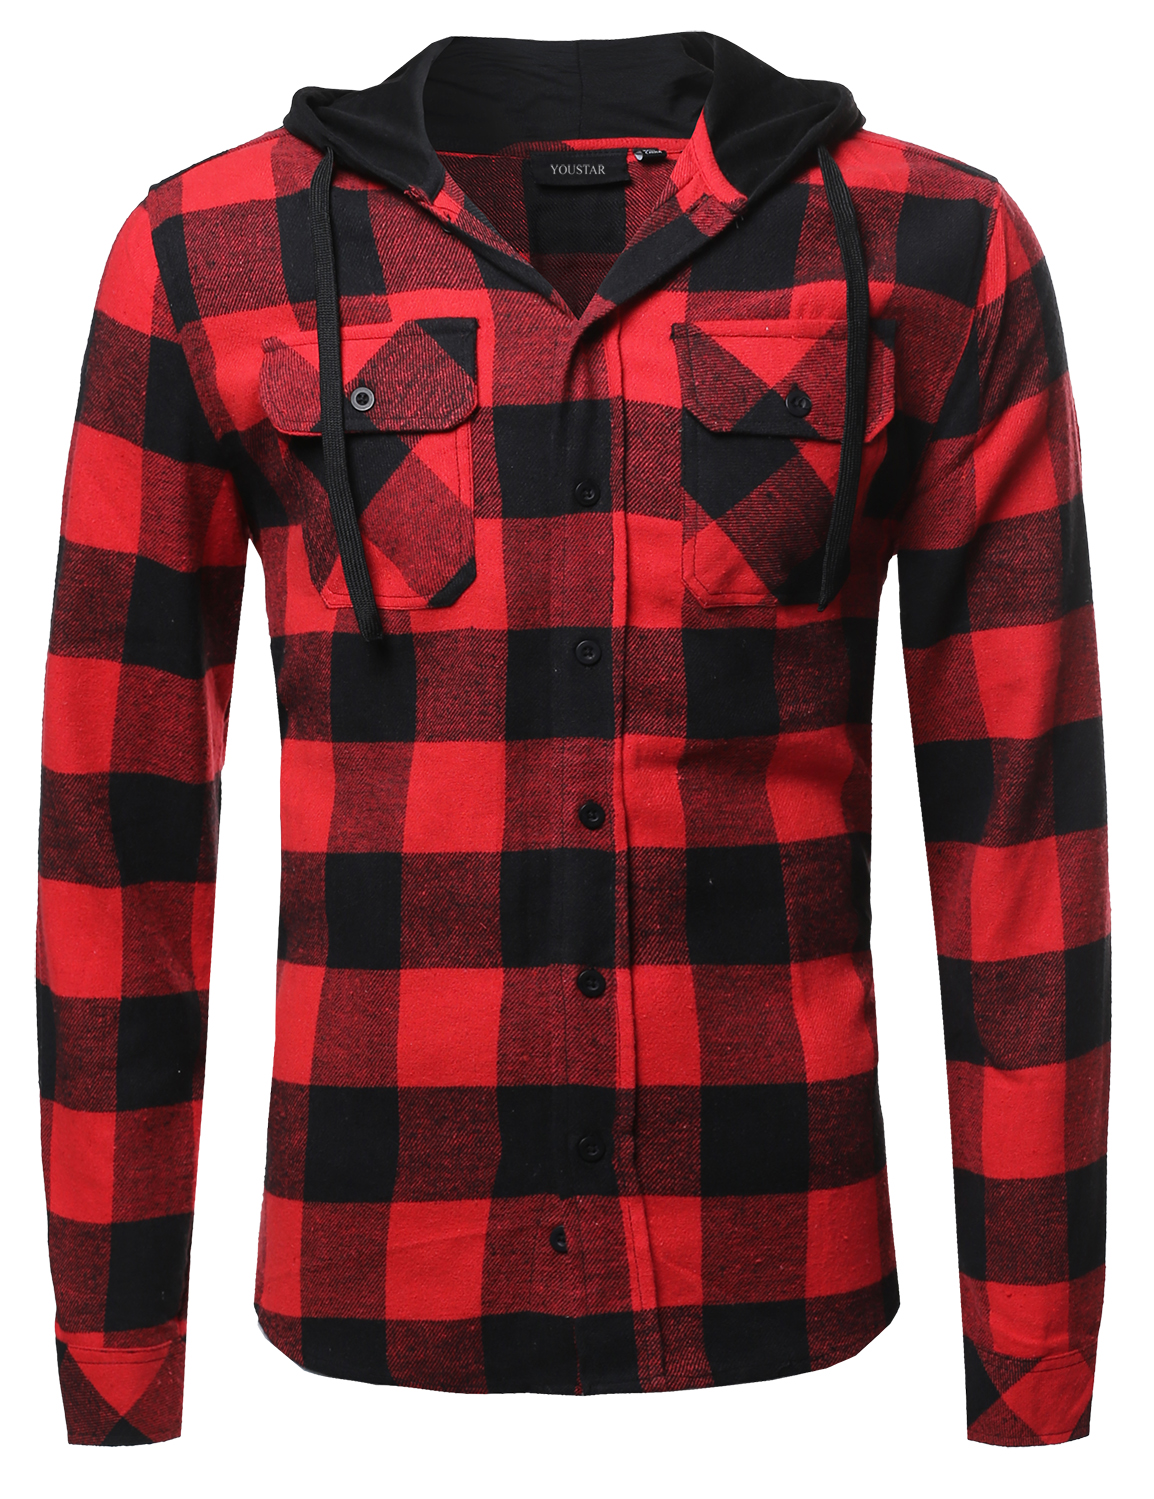 Men's Flannel Plaid Checkered Long Sleeve Shirt Hoodie With Front Pockets. from $ 27 99 Prime. out of 5 stars Timeson. Women's Long Sleeve Shirt V Neck Pullover Plaid Lightweight Thin Sweatshirt Hoodie with Pocket. from $ 21 99 Prime. out of 5 stars DJT. Women's Funnel Neck Check Contrast Pullover Hoodie Top.